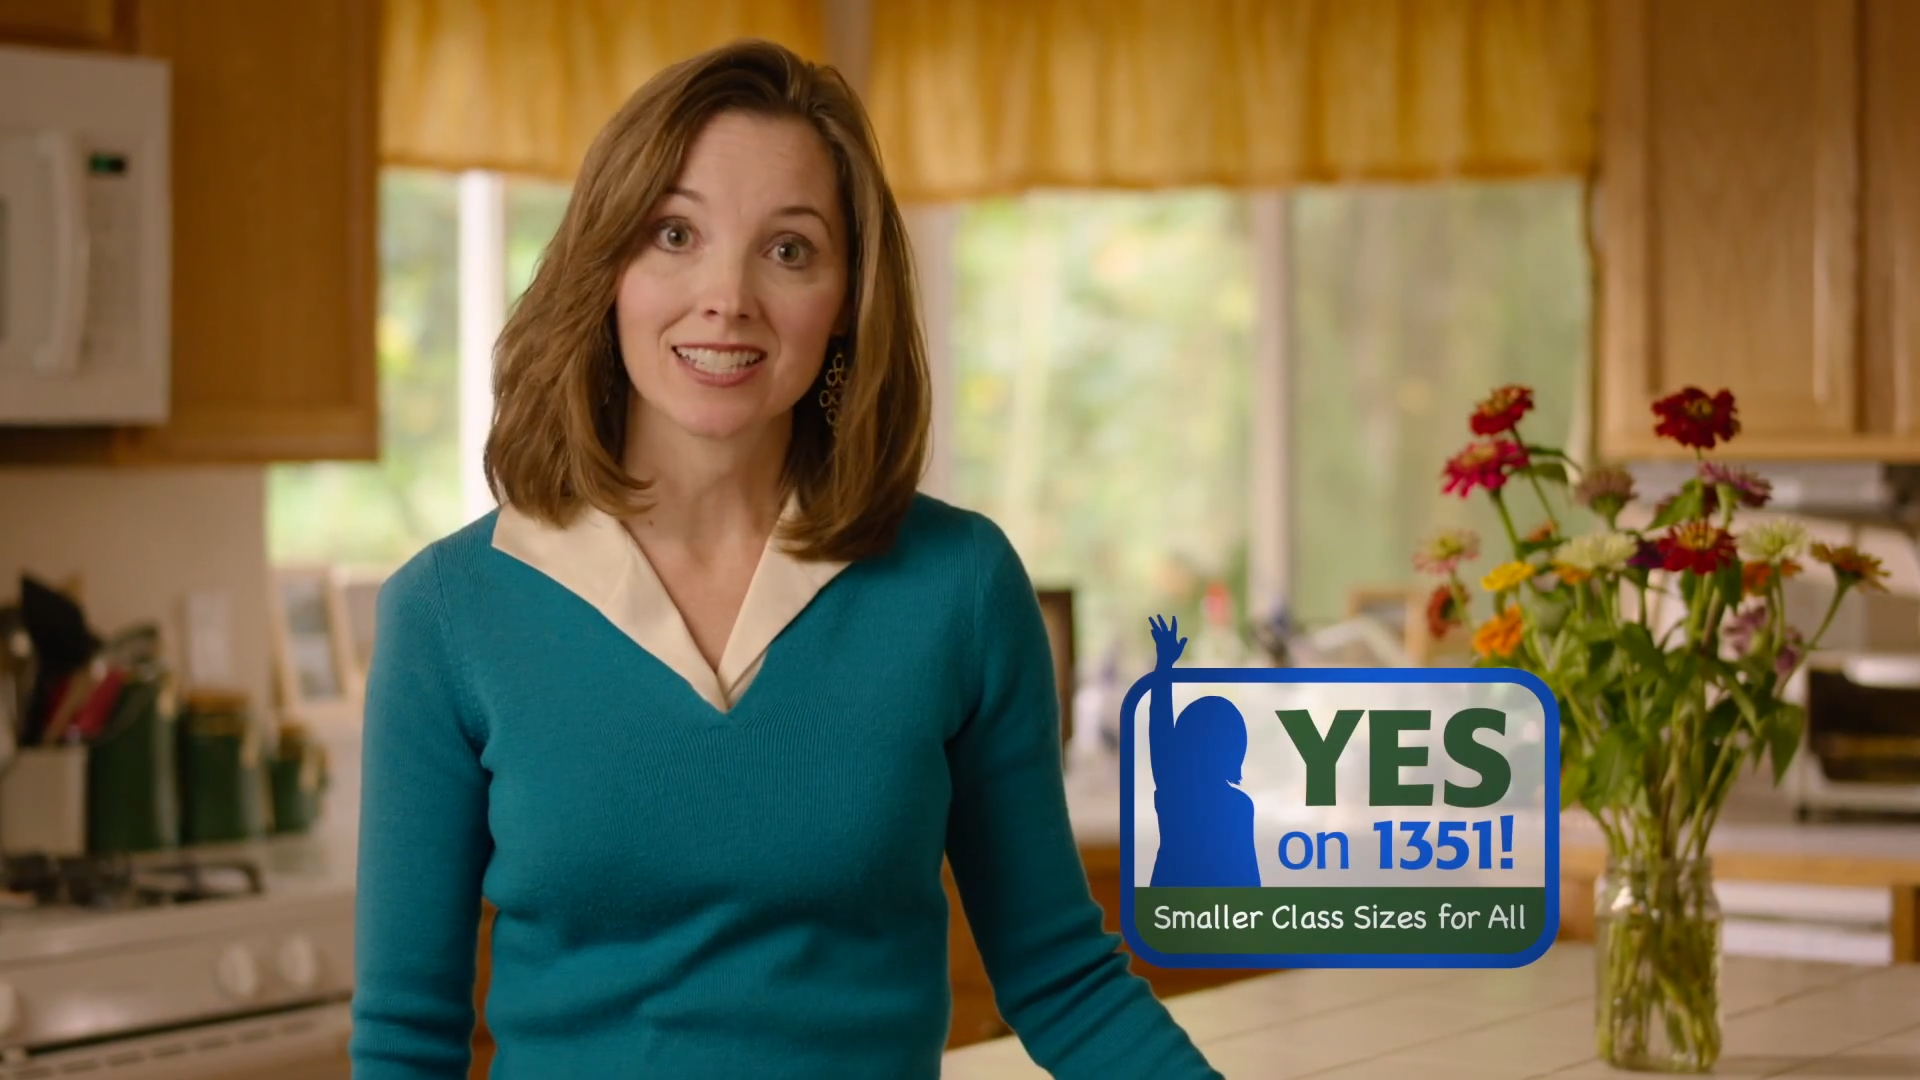 Yes on 1351 - Renton Mom